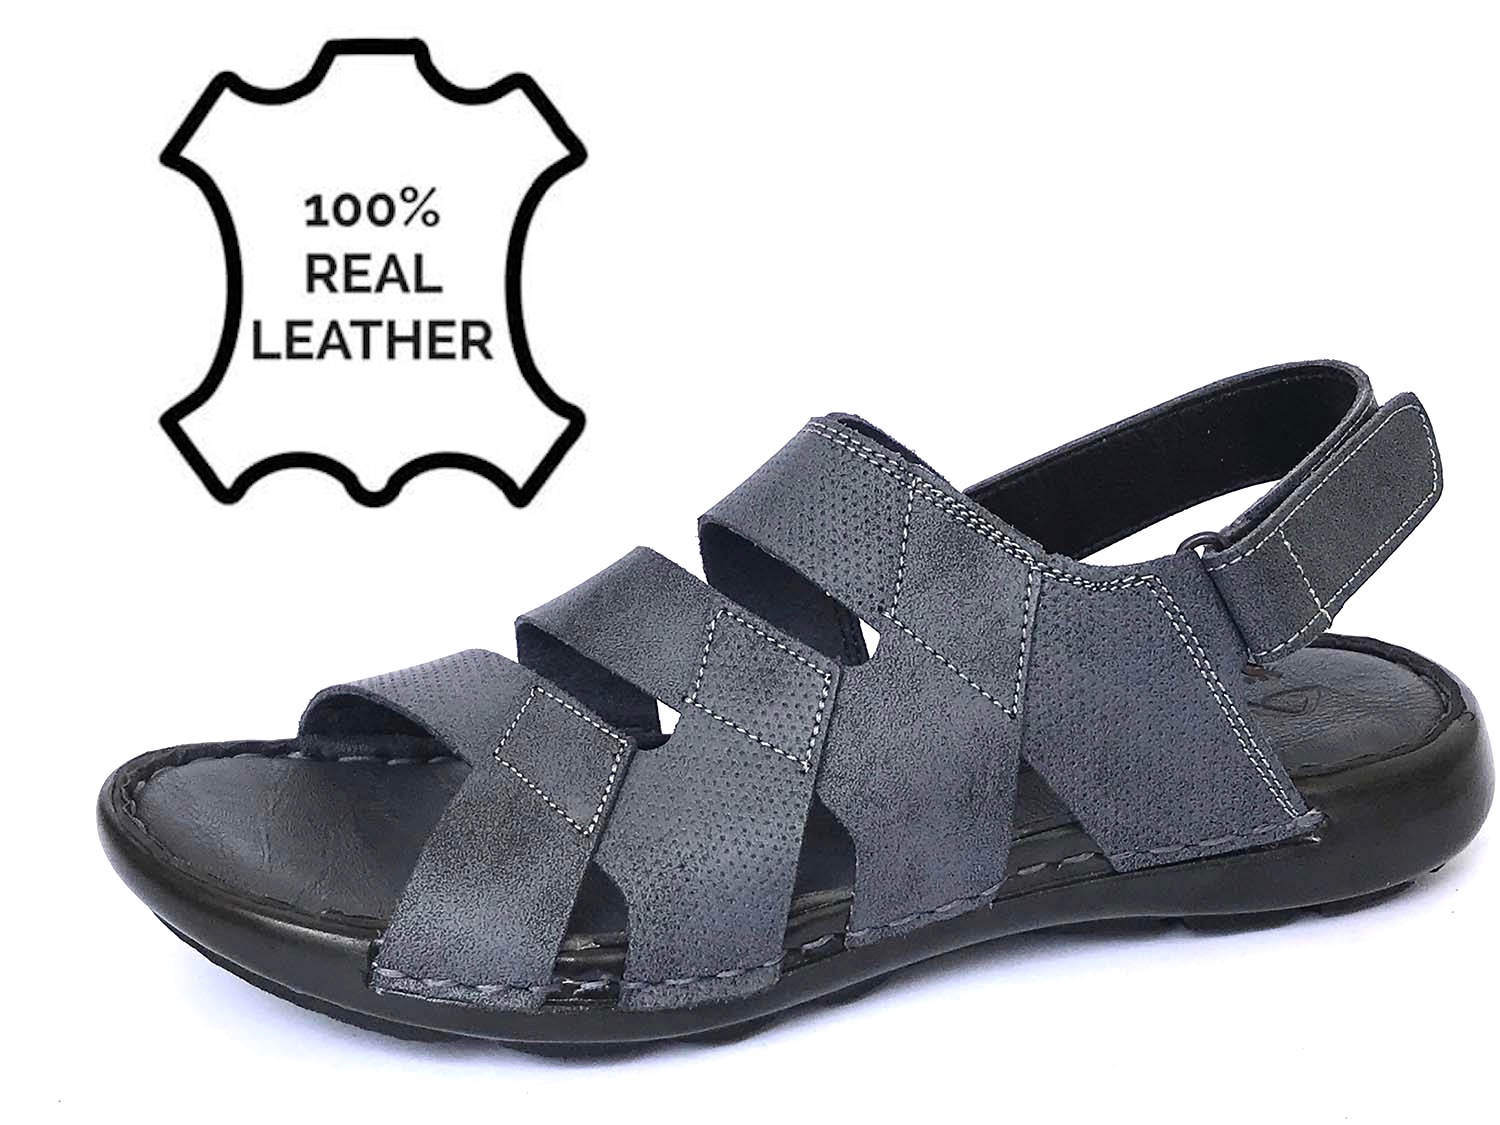 100% Pure Leather Sandal For Men